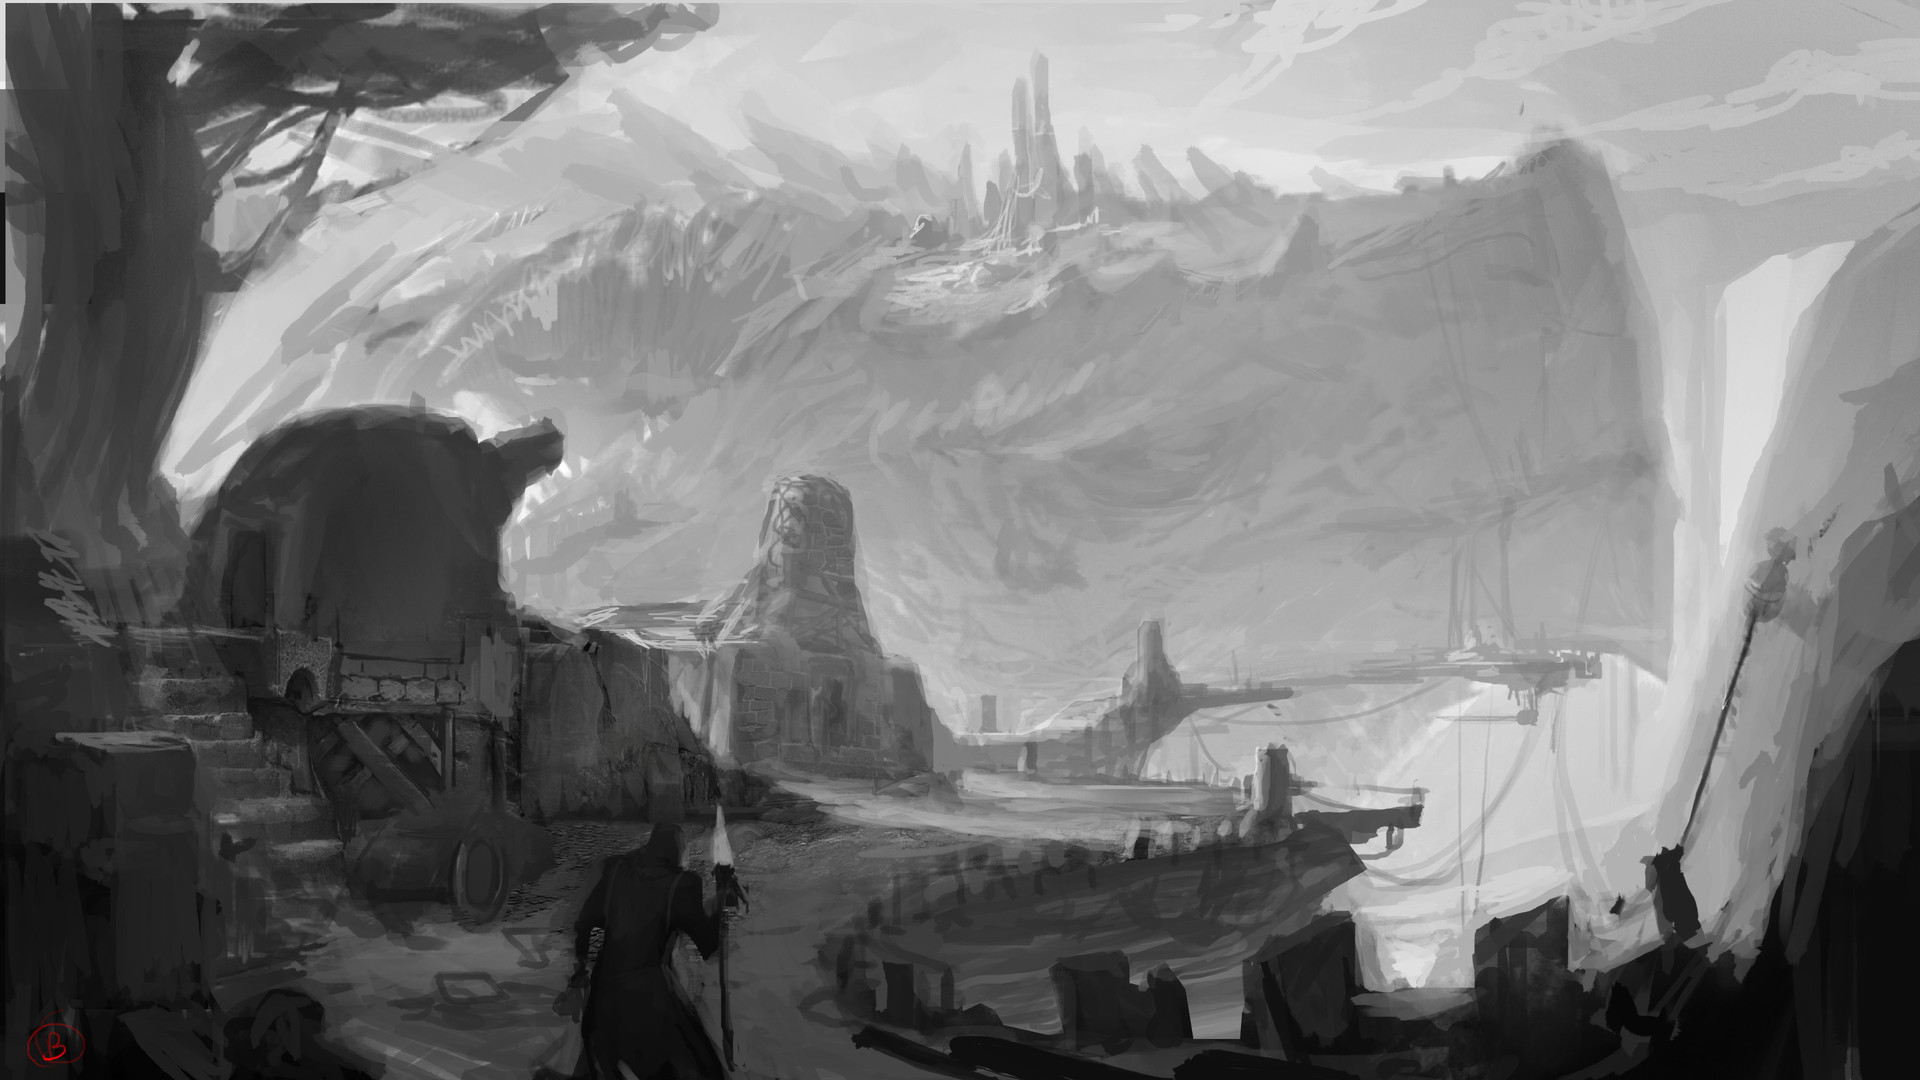 Alan dukardt 2d environment art challengeadukardtartsketch4